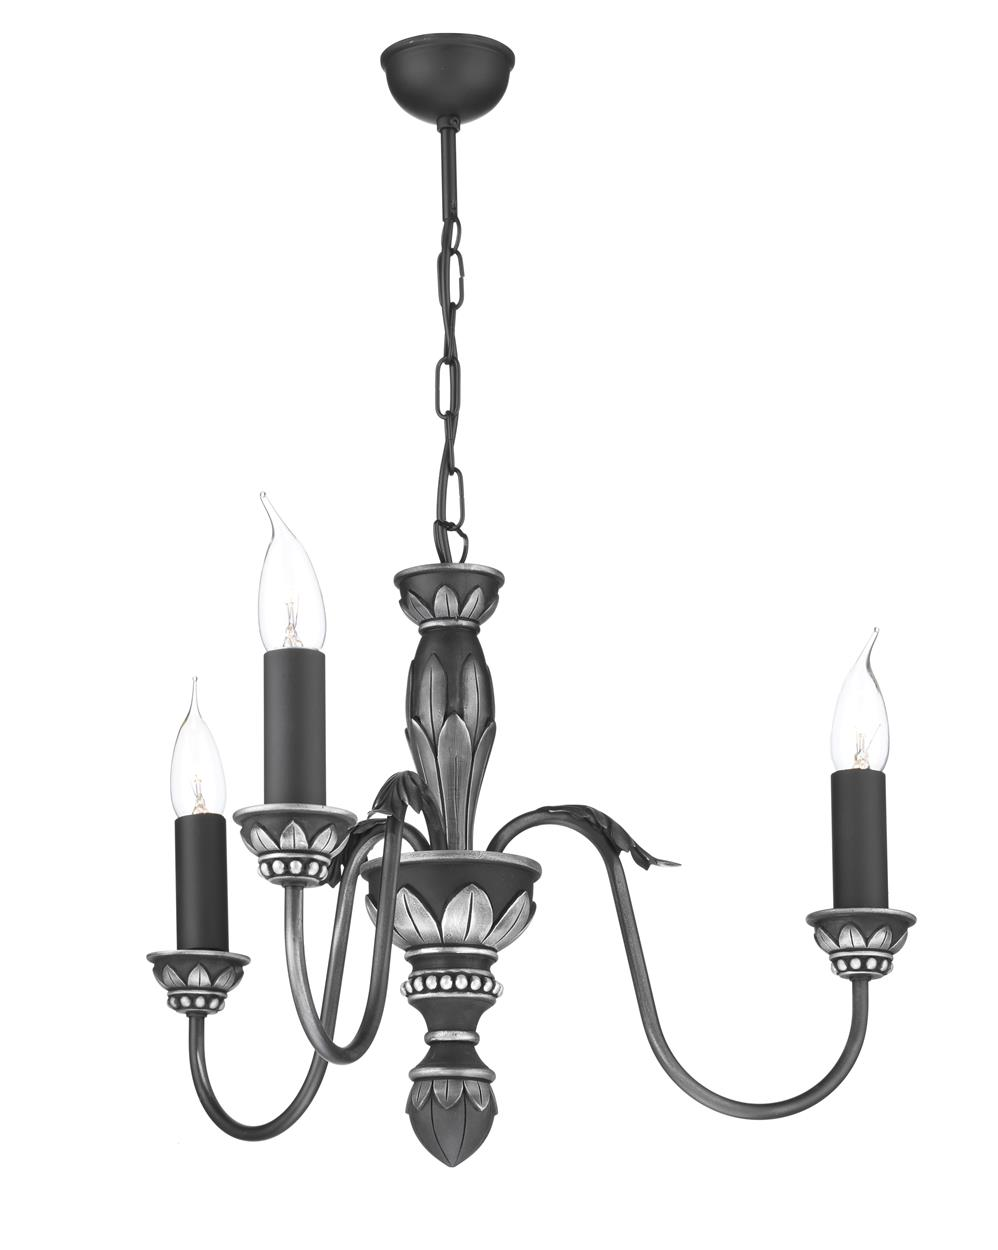 David Hunt Lighting OX3 Oxford 3 Light Pendant in Antique Pewter (Fitting Only)